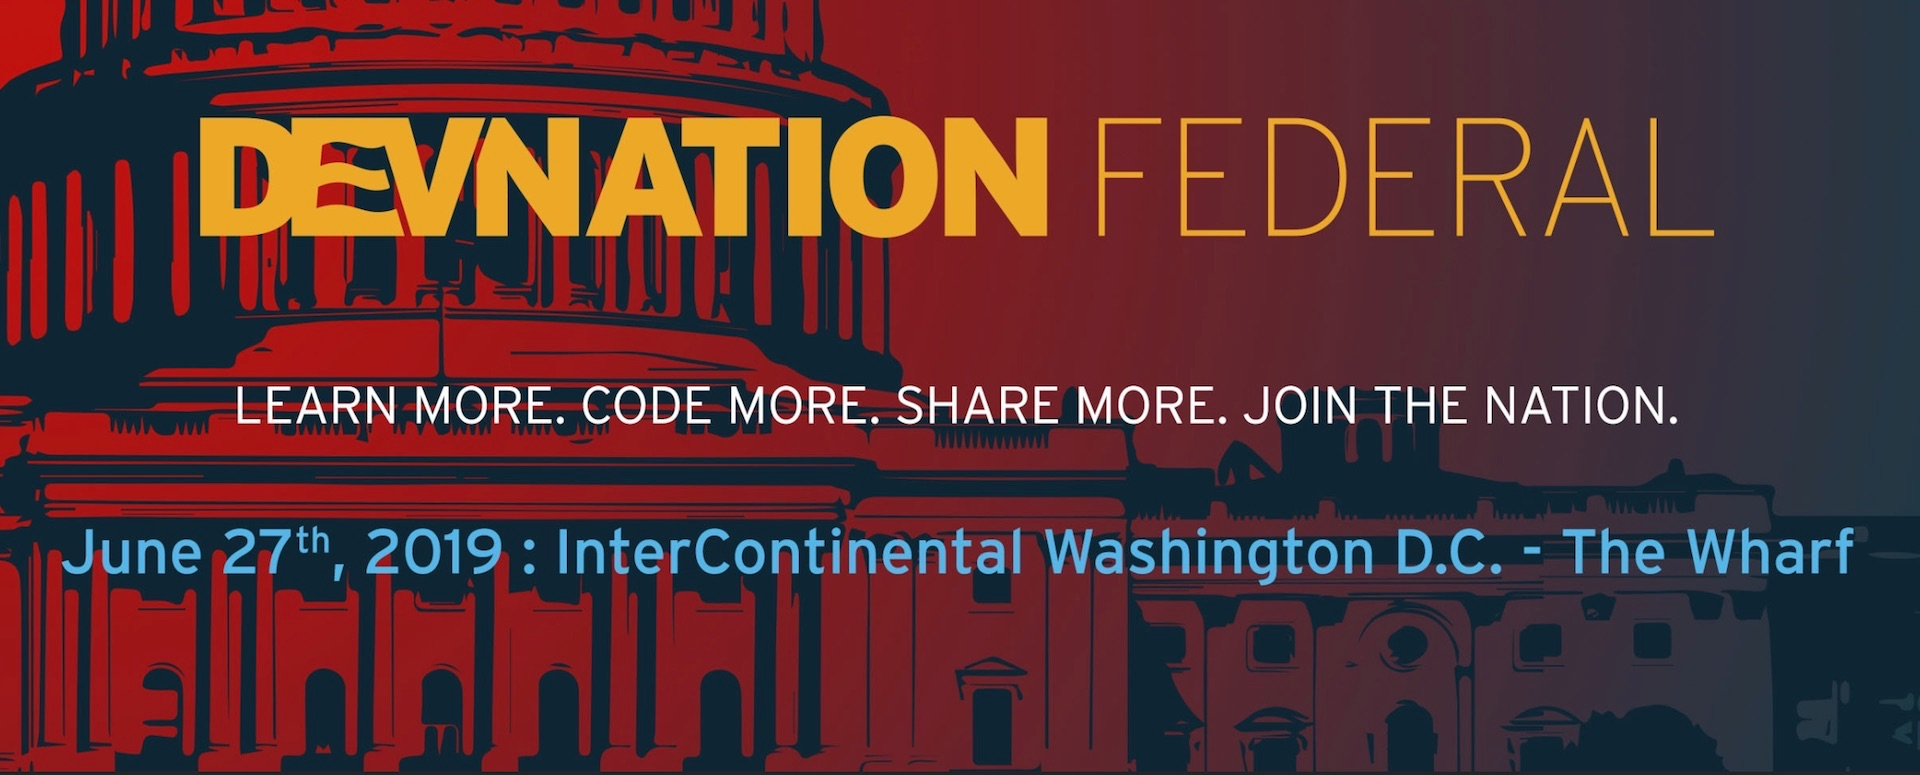 DevNation Federal brings open source to the Beltway